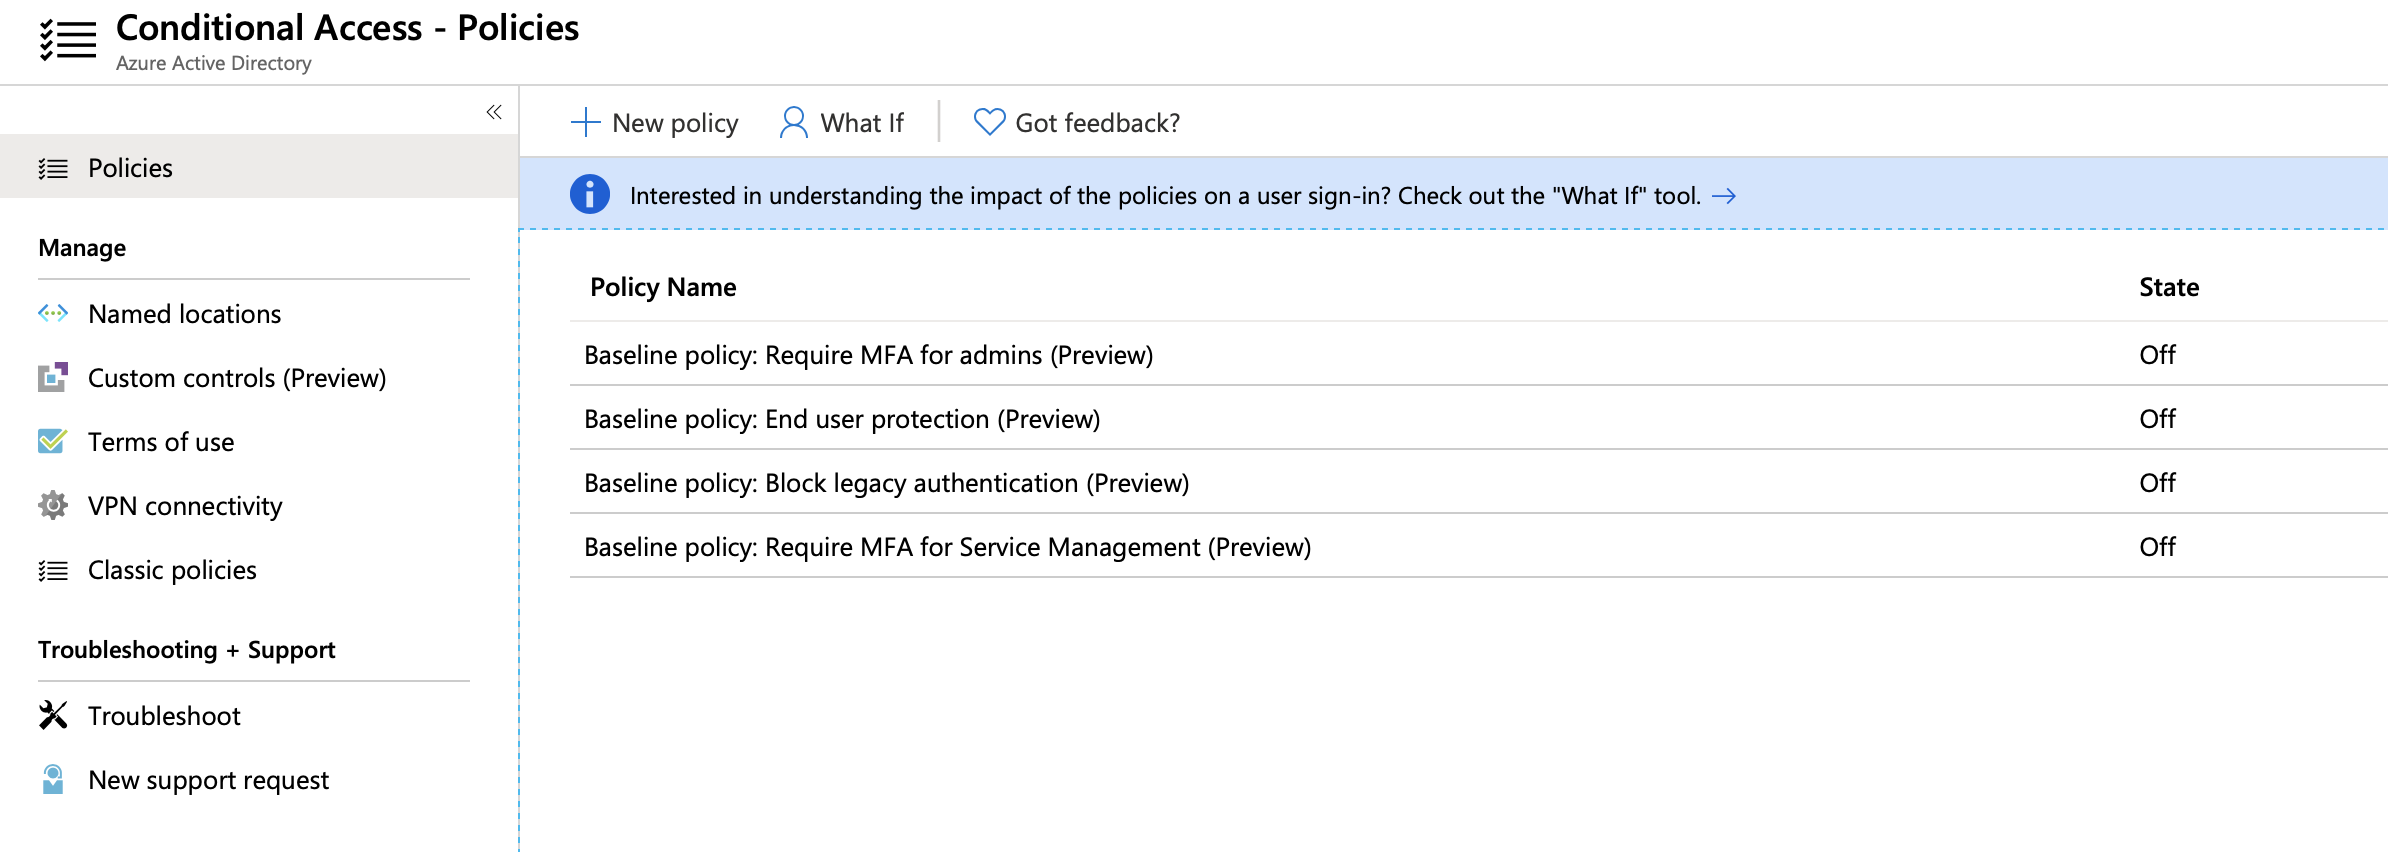 A screenshot showing the new baseline Conditional Access policies enabled